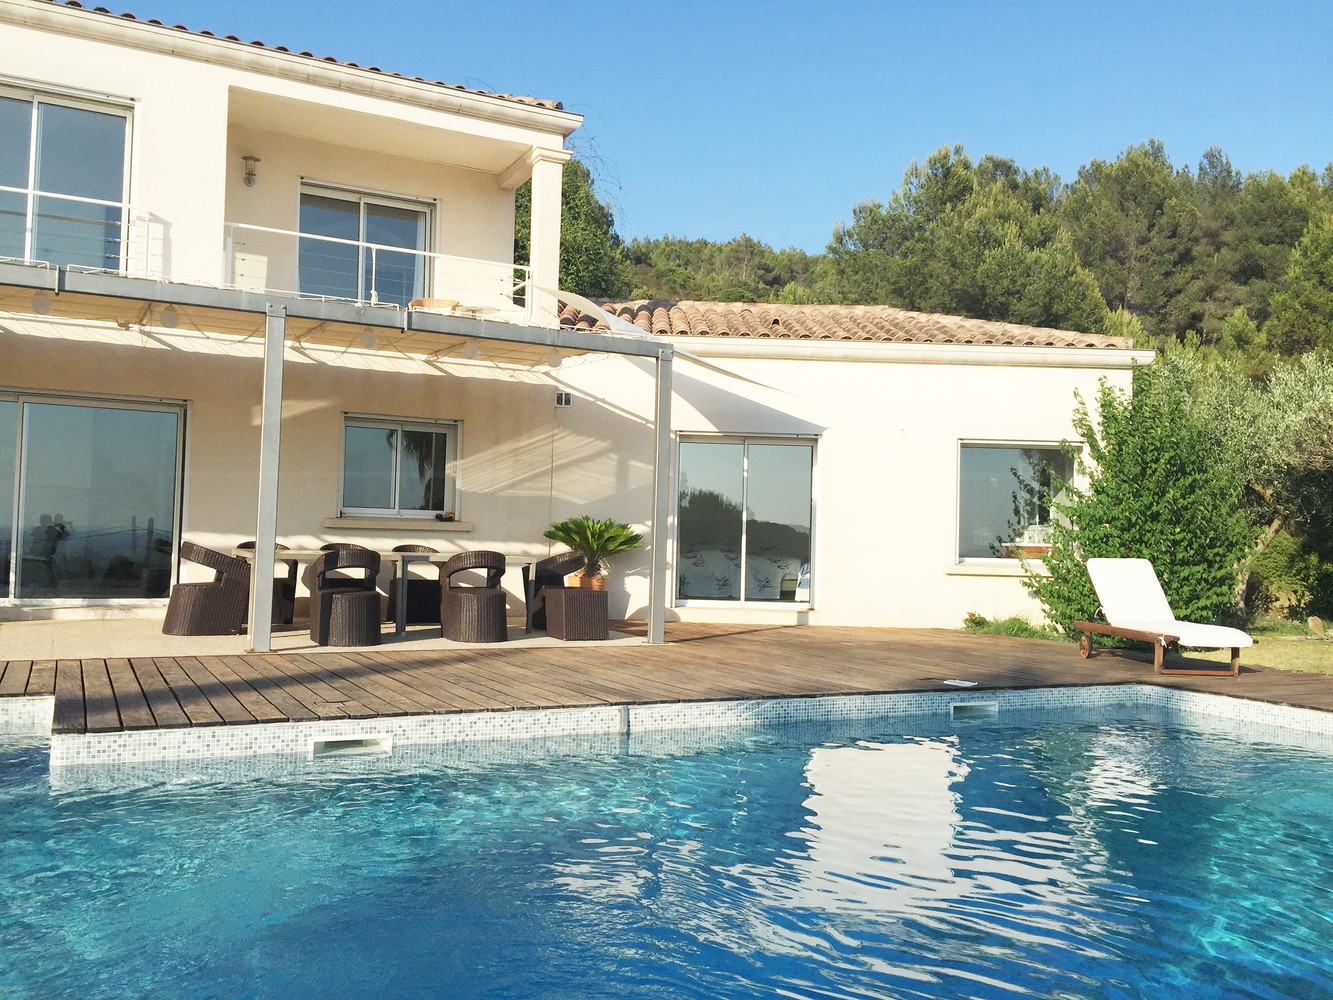 House in carqueiranne with sea view buy house with 4 for Piscine orsole